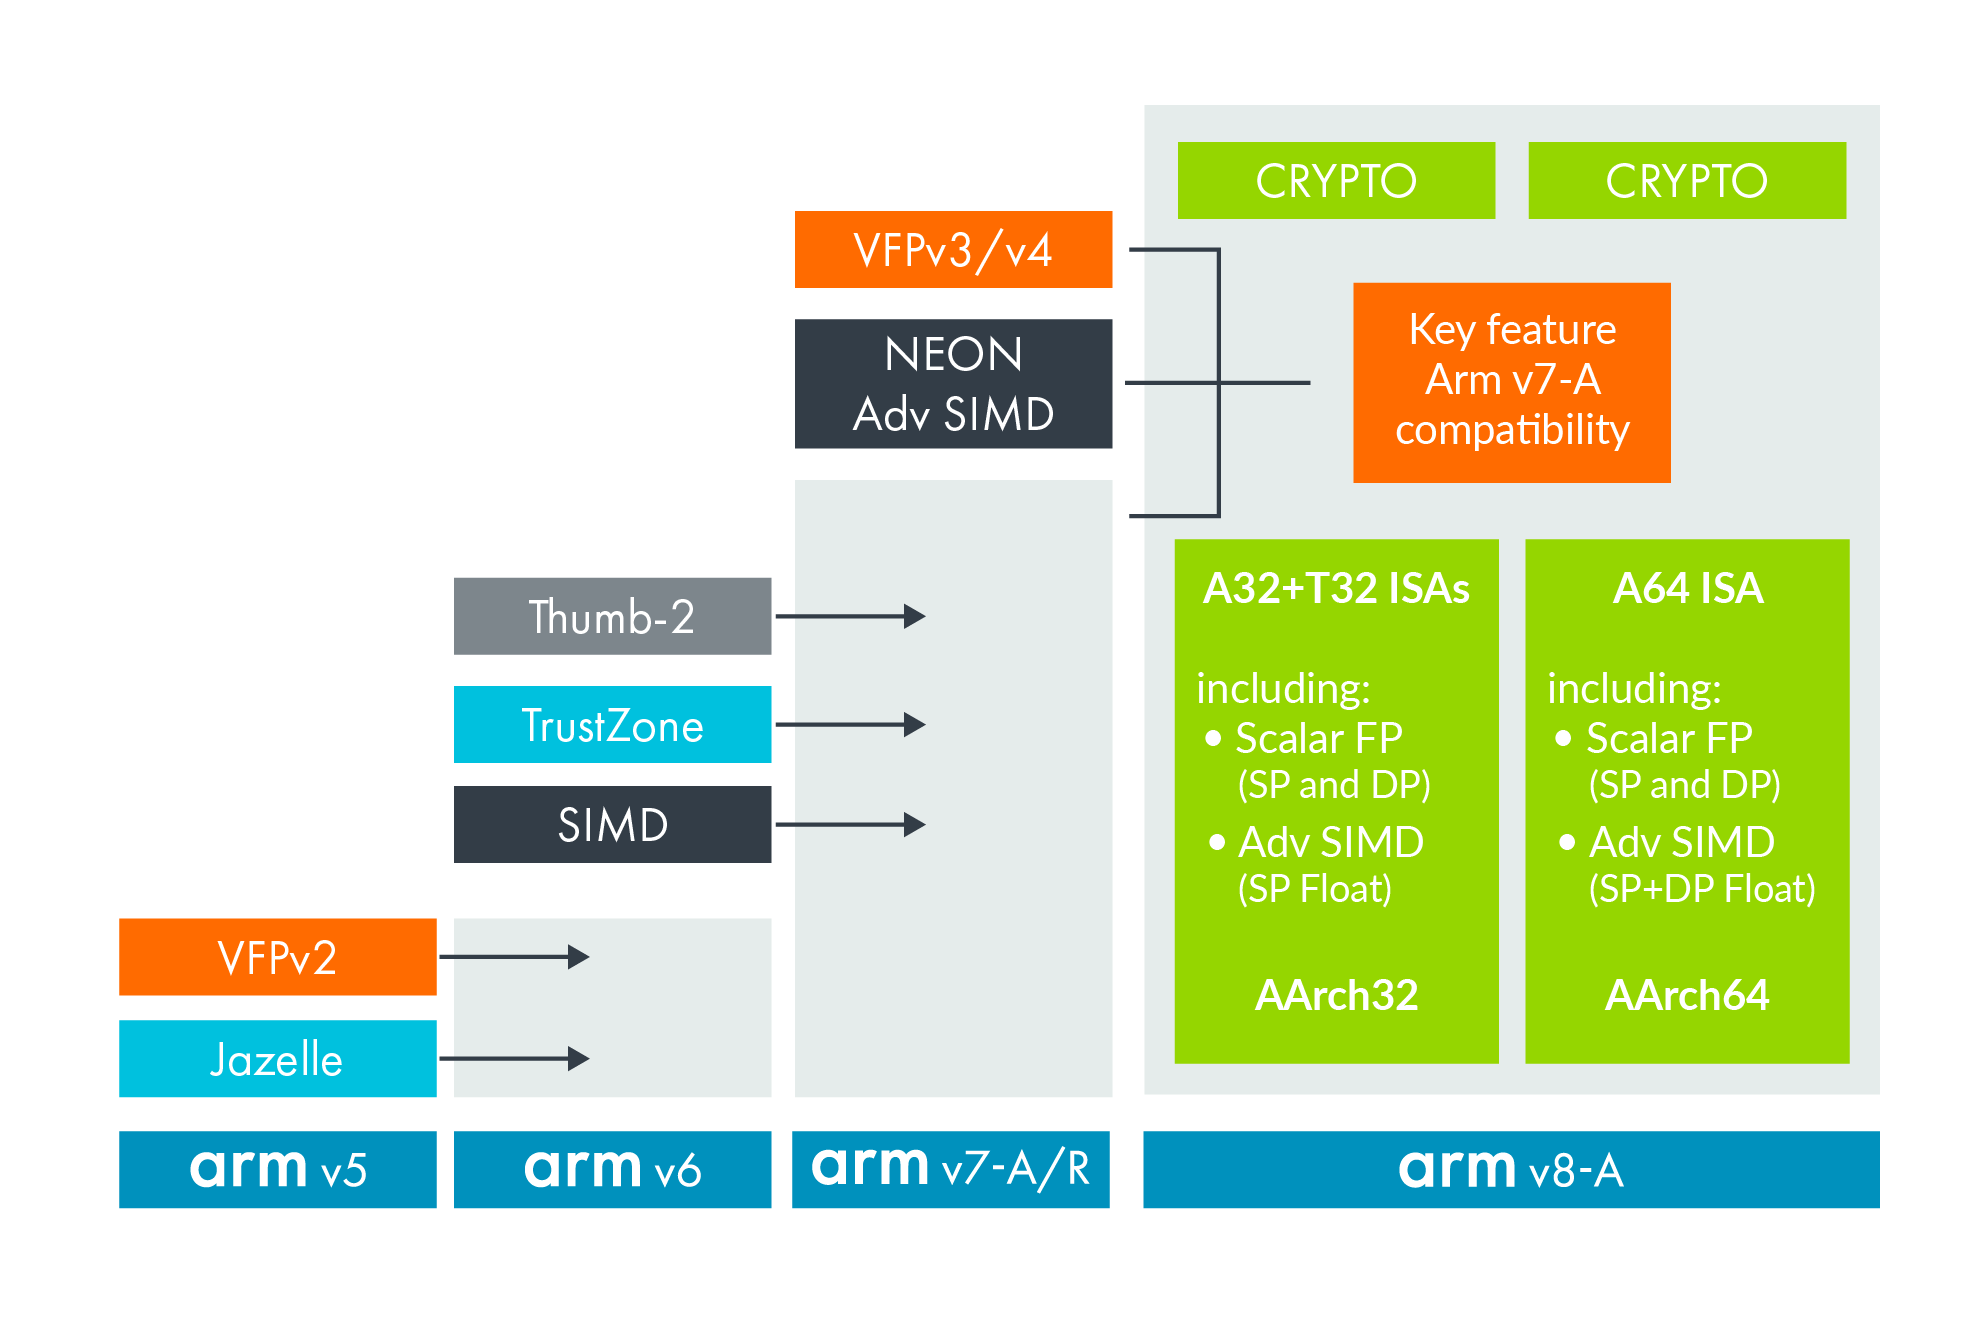 Development of the Arm architecture, from v5 to v8.